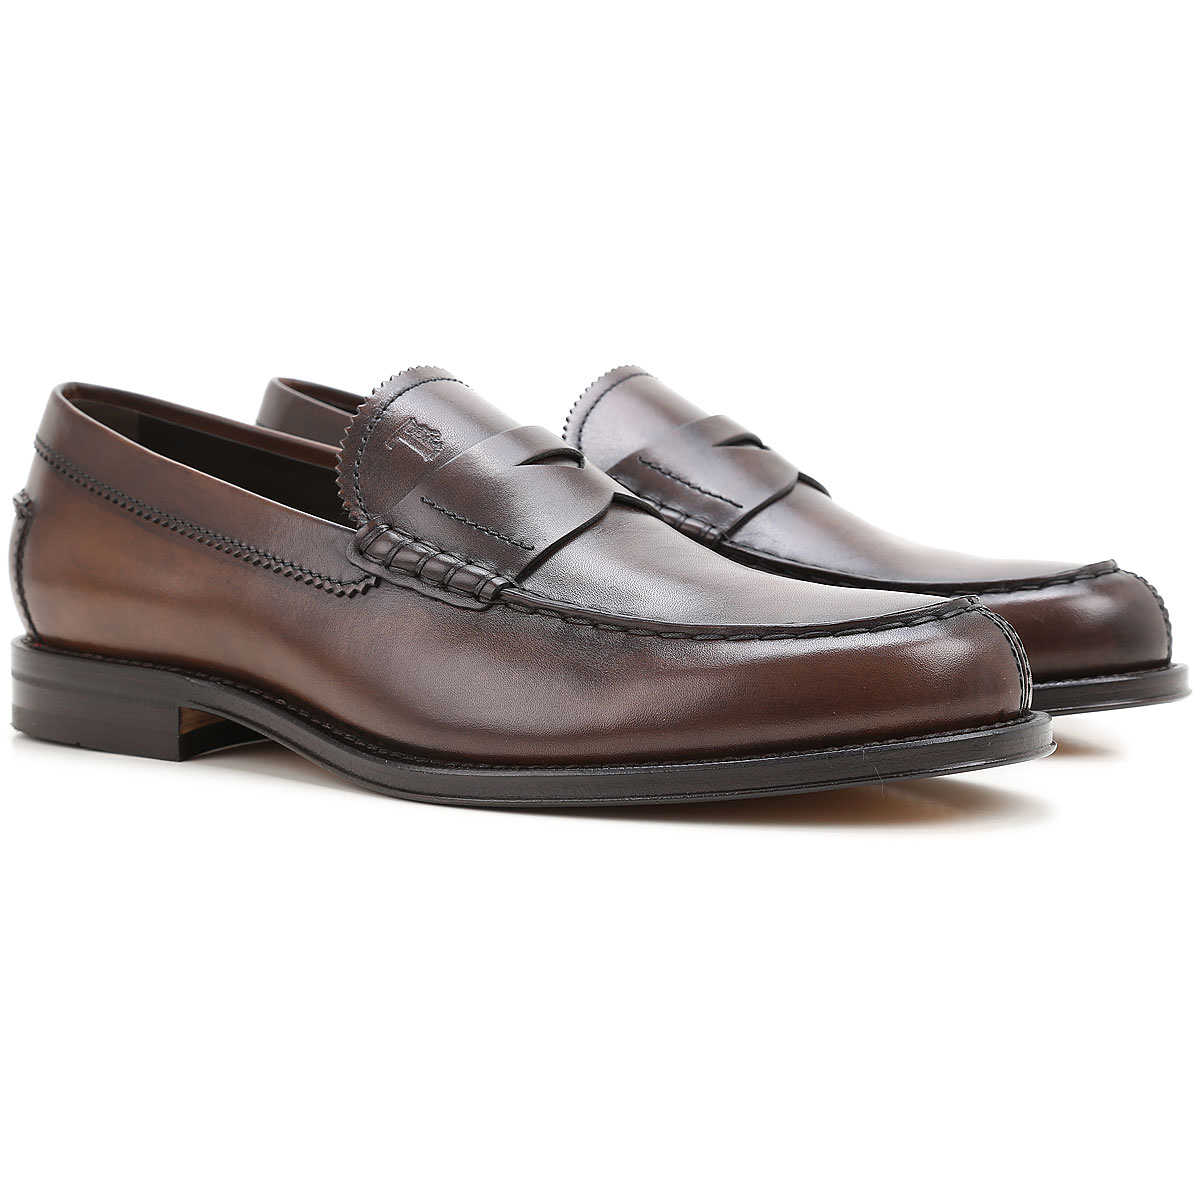 Tods Loafers for Men On Sale Cacao - GOOFASH